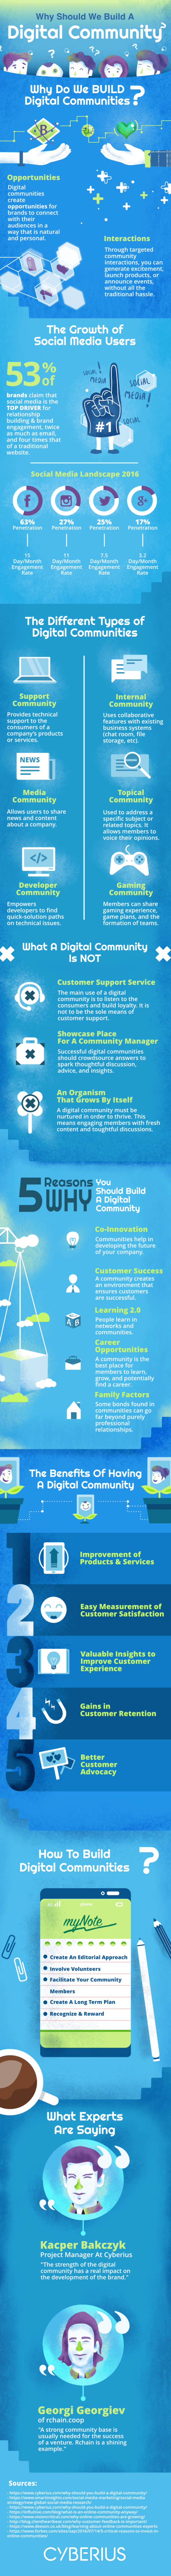 Why Should We Build A Digital Community? Infographic